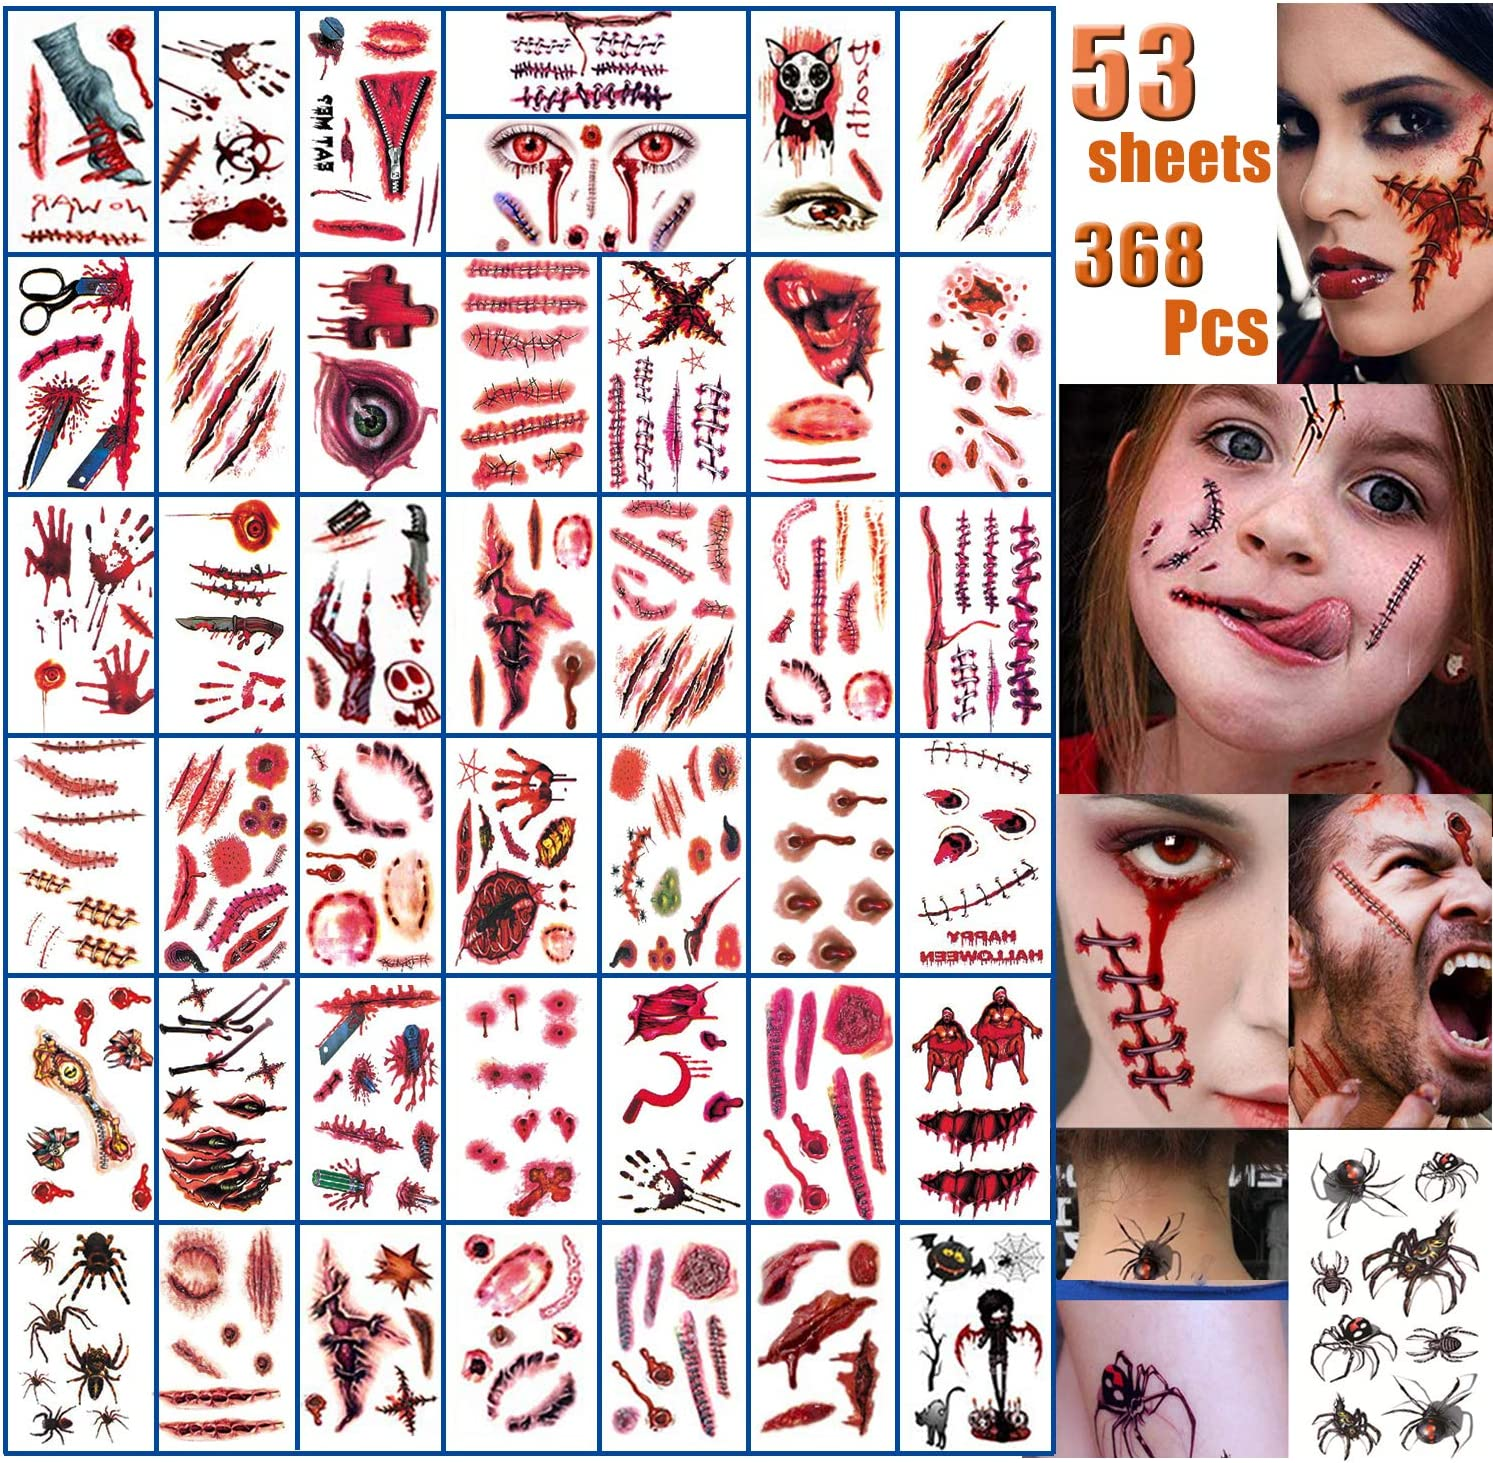 Halloween Face Fake Scar Tattoos, 53 Sheets Zombie Makeup Kit Decoration, Realistic Bloody Makeup Face Decorations Fake Injury Wound Tattoo for Halloween Costume for Party Supplies Cosplay Props